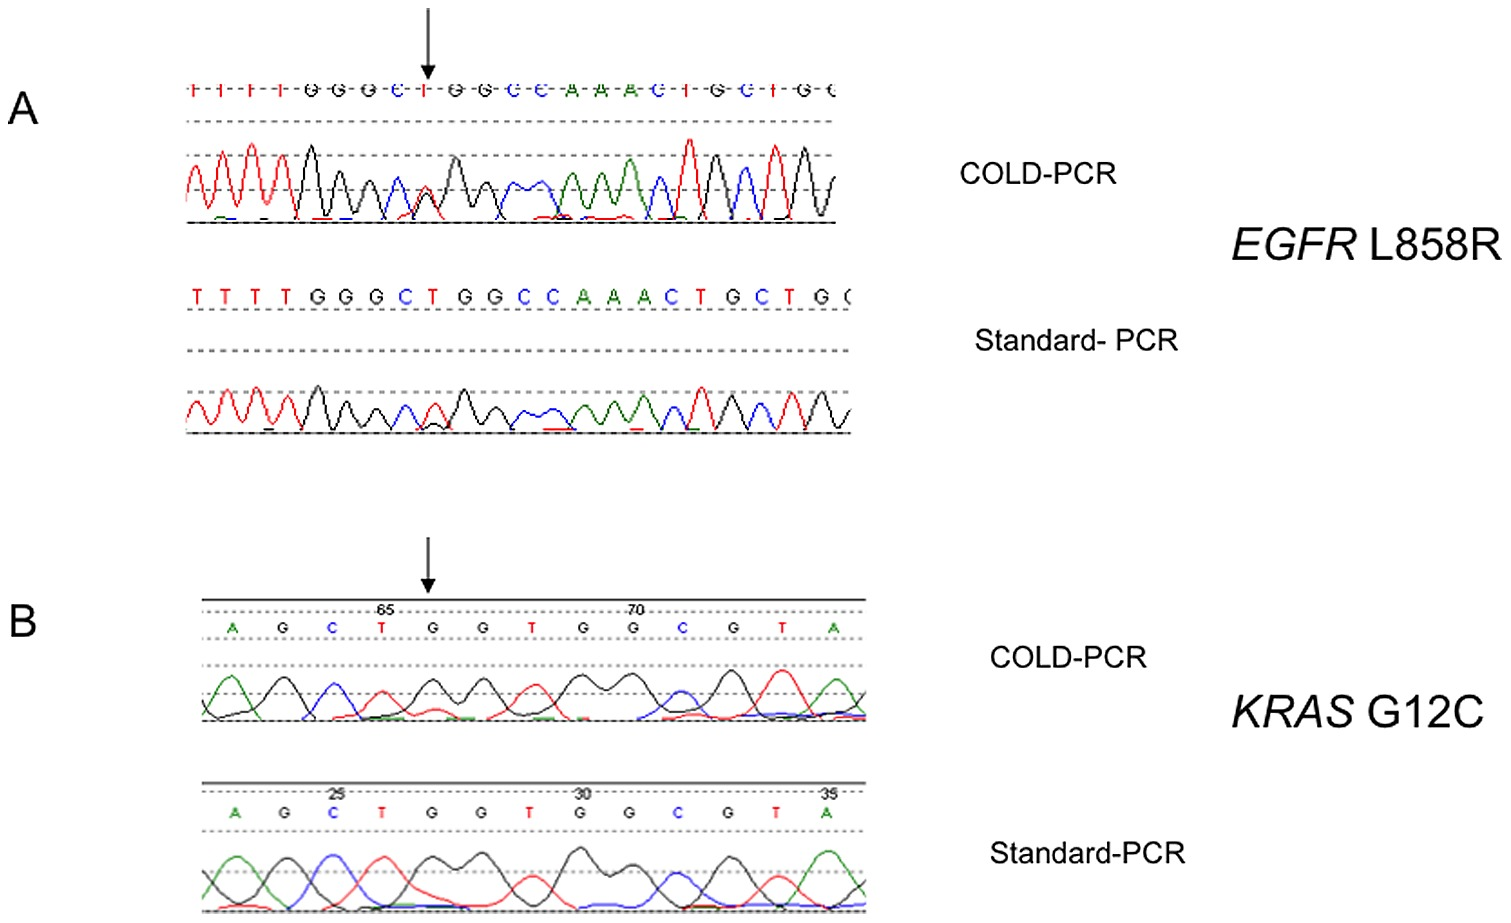 examples of comparative analysis of cold pcr vs standard pcr